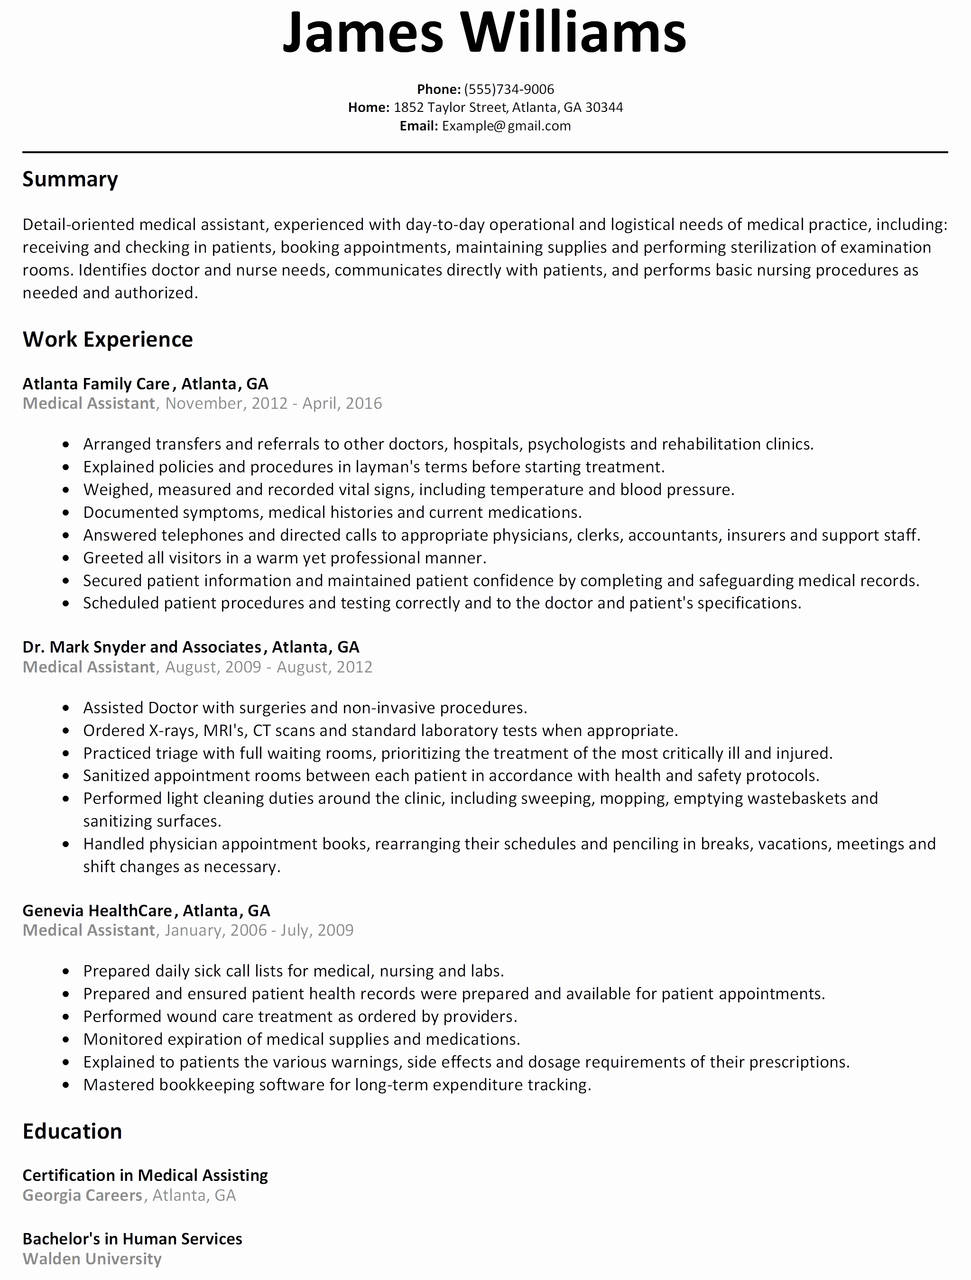 Example Resumes 8 Ken Coleman Resume Template Samples Resume Database Template